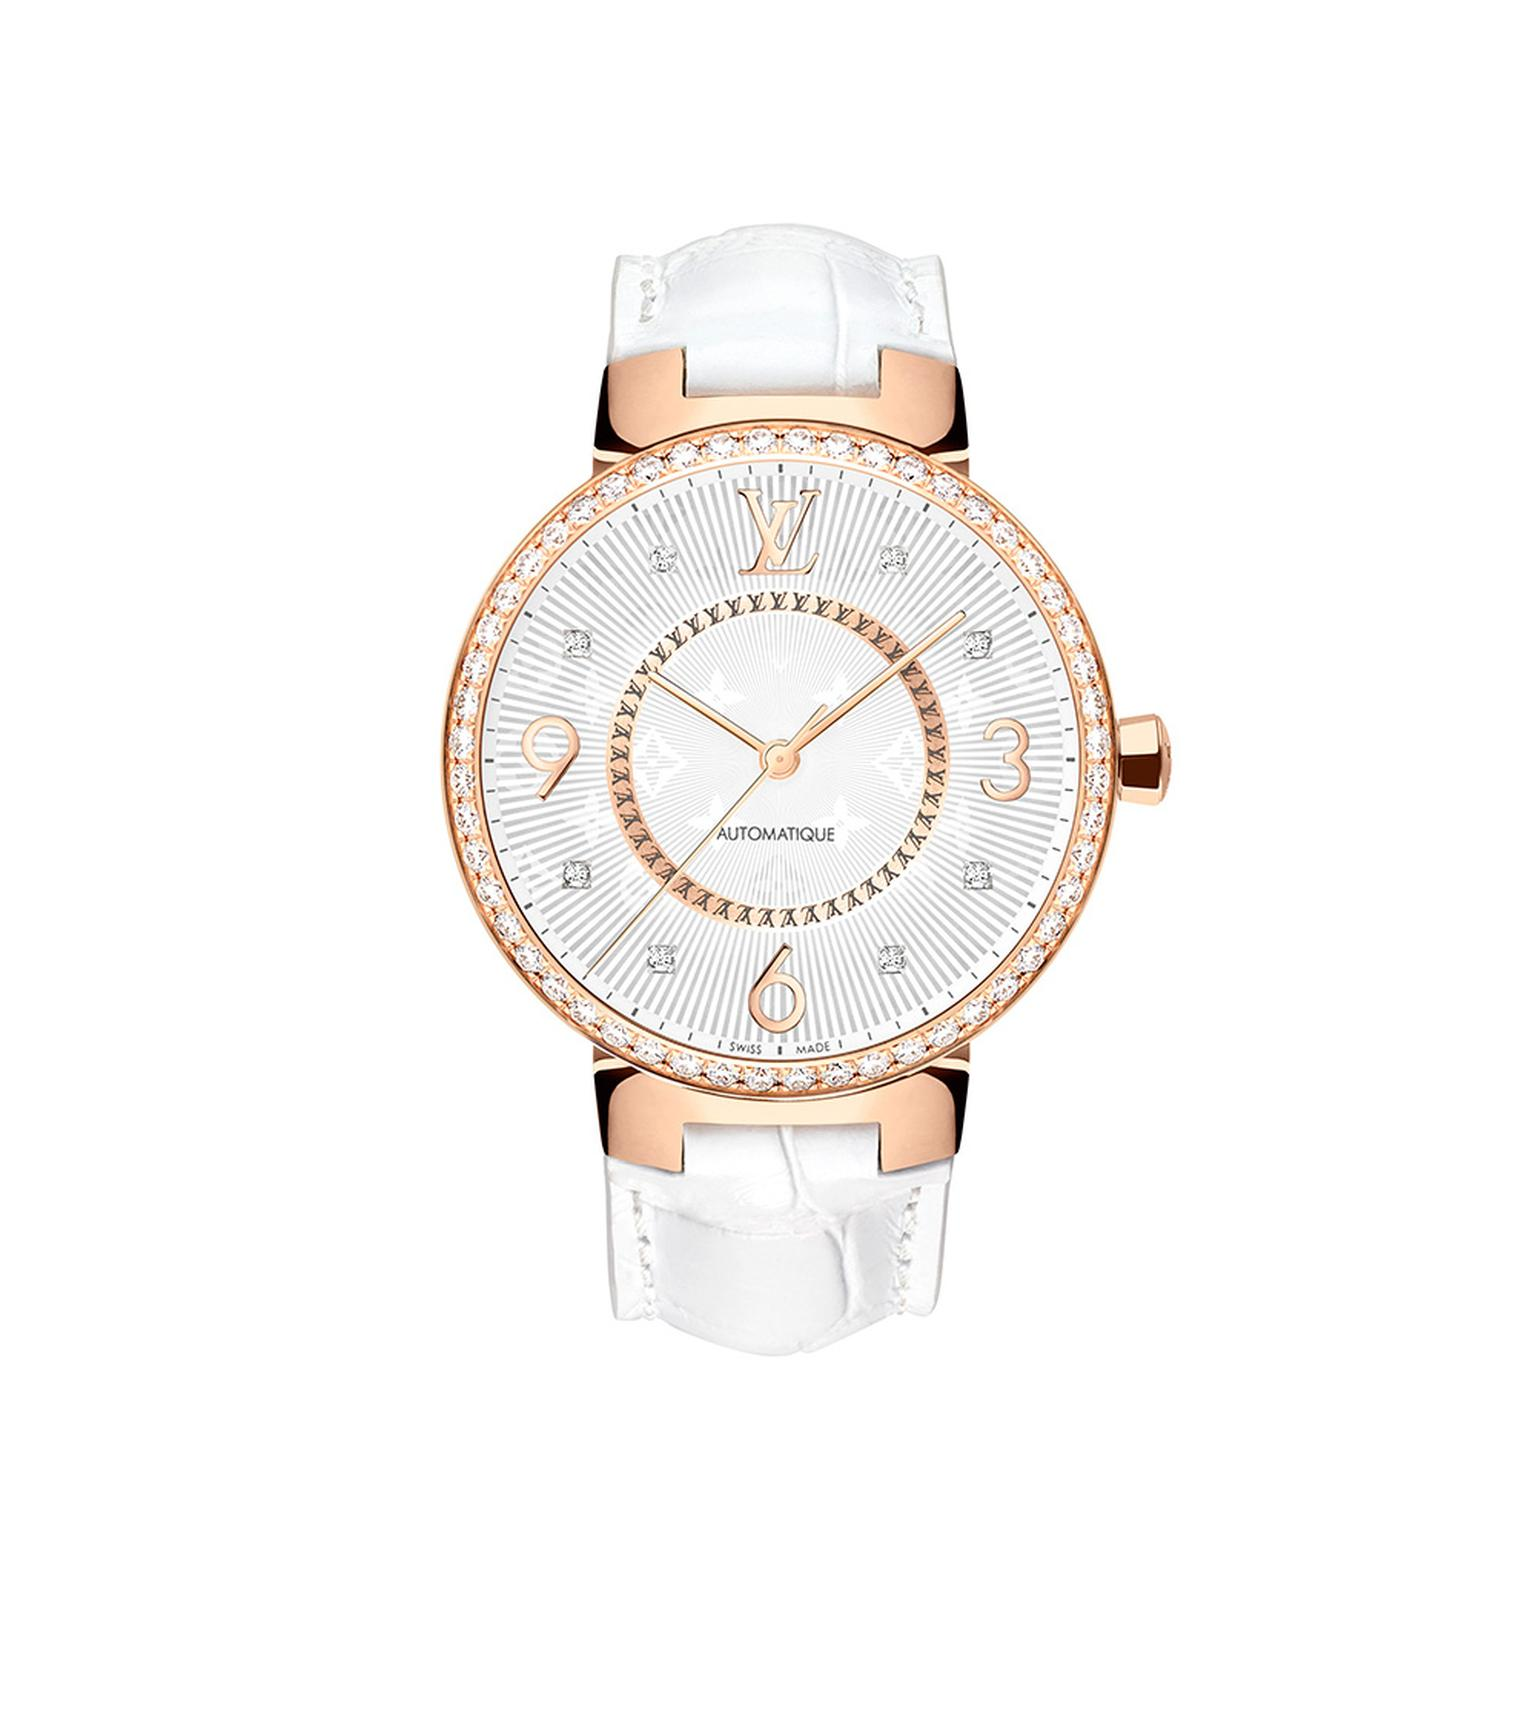 Louis Vuitton Tambour Monogram Or Rose Serti 35mm watch with a pink gold case, diamond-set bezel with an automatic movement on a white alligator strap. © LOUIS VUITTON. Auteur: I REEL.